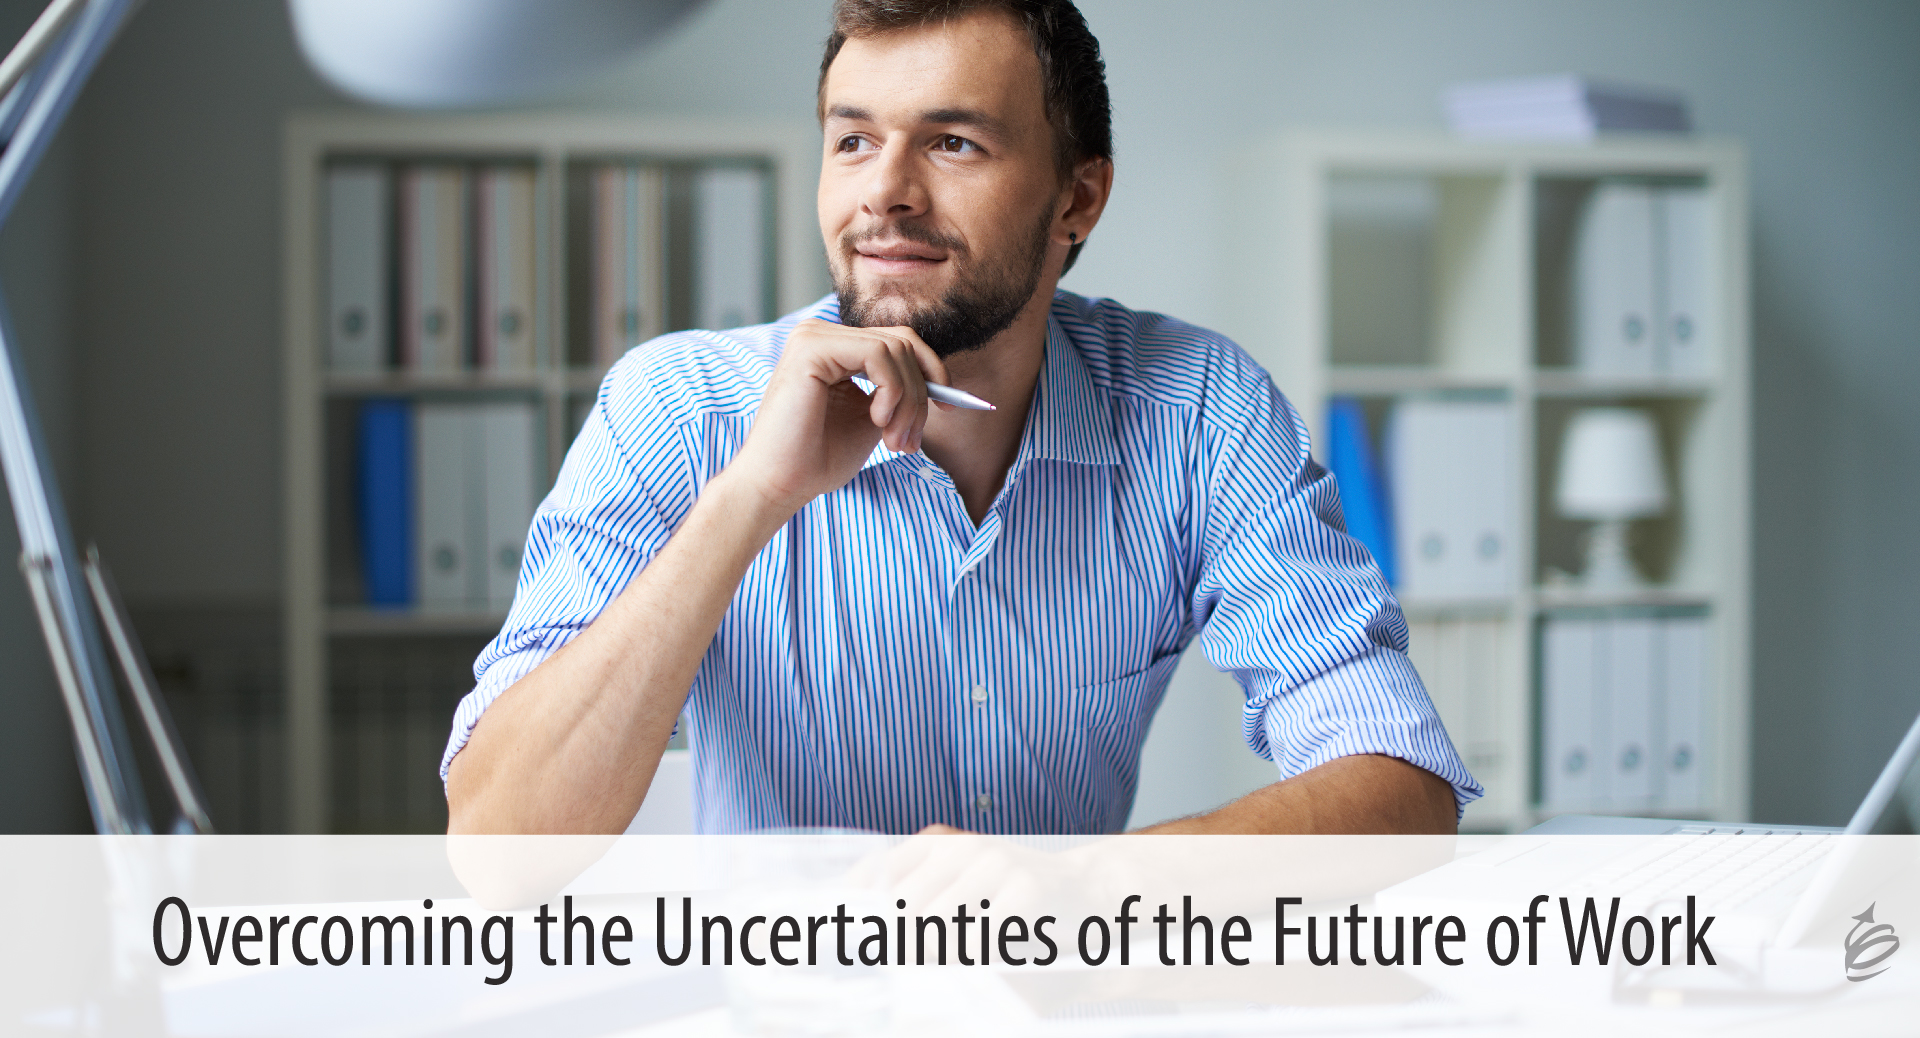 Overcoming the Uncertainties of the Future of Work